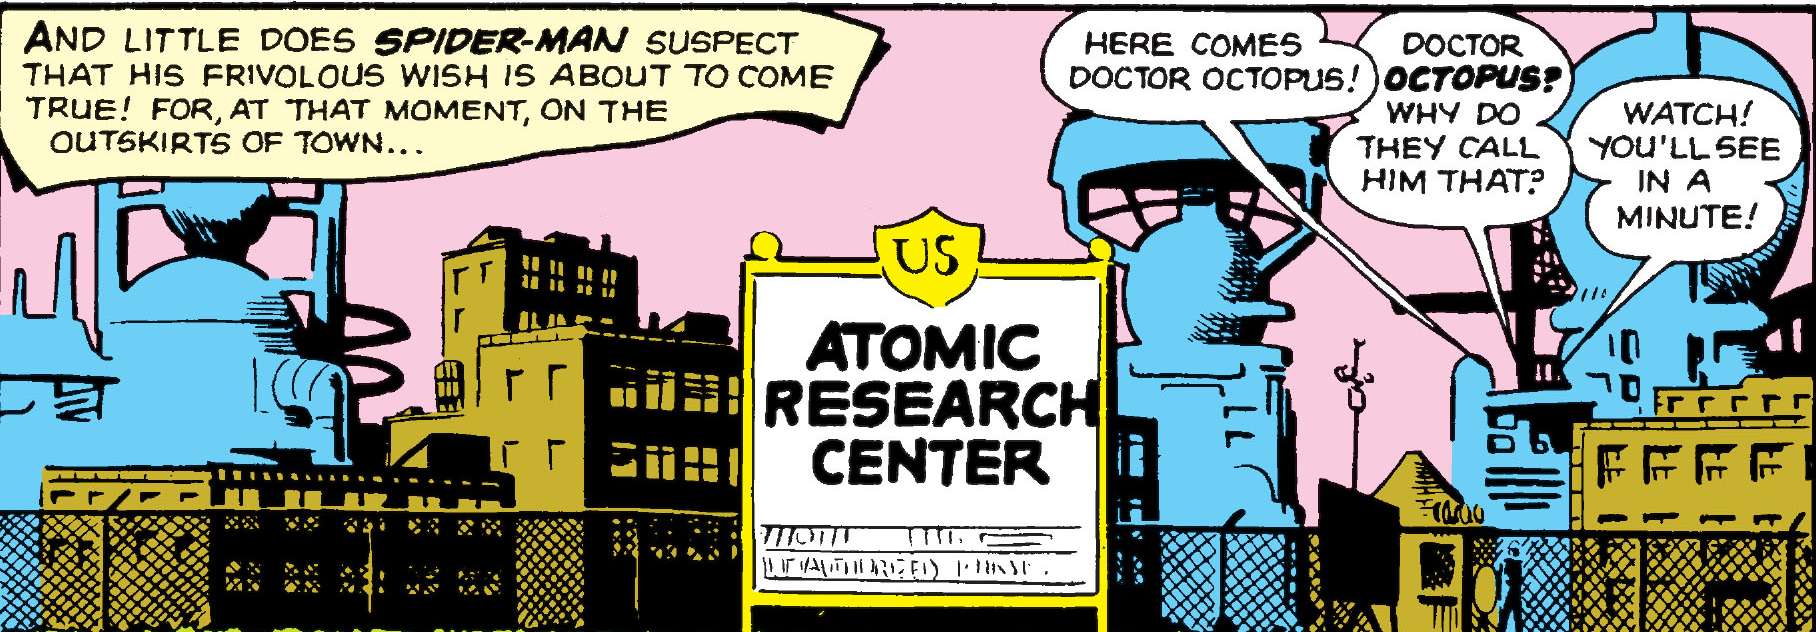 Atomic Research Center